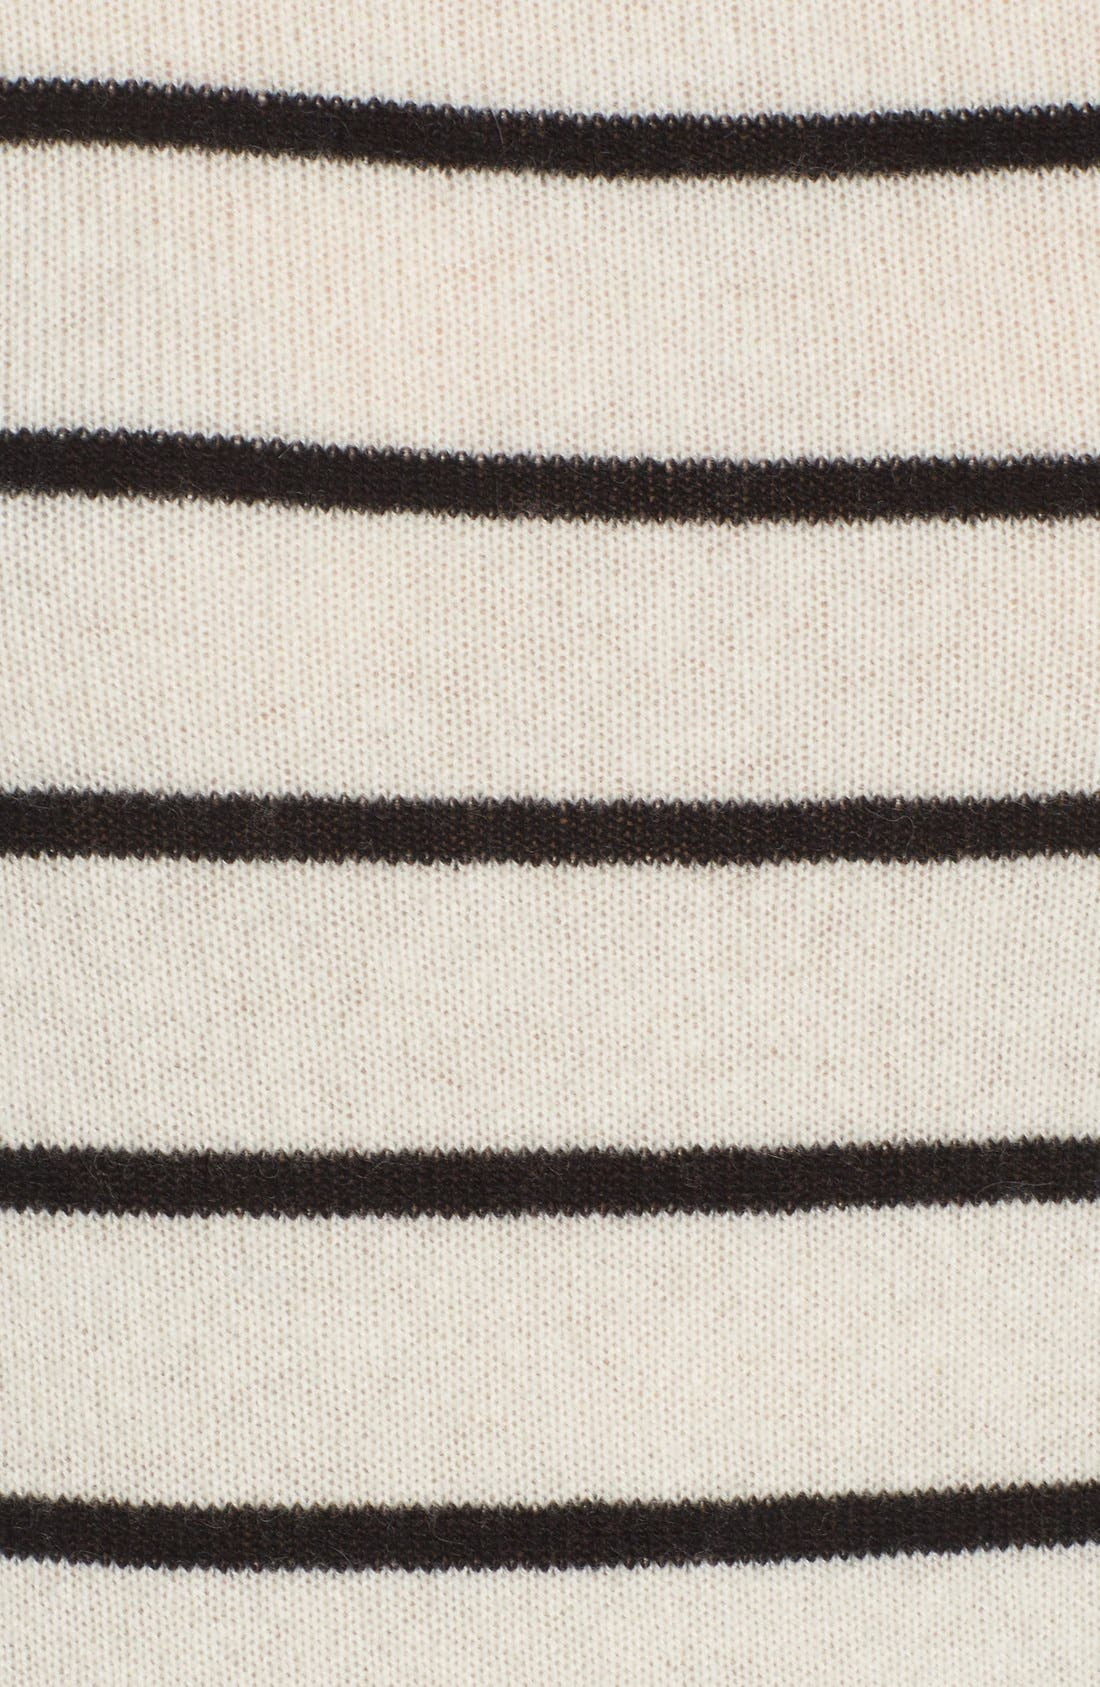 Wool & Cashmere Funnel Neck Sweater,                             Alternate thumbnail 5, color,                             Ivory- Black Stripe